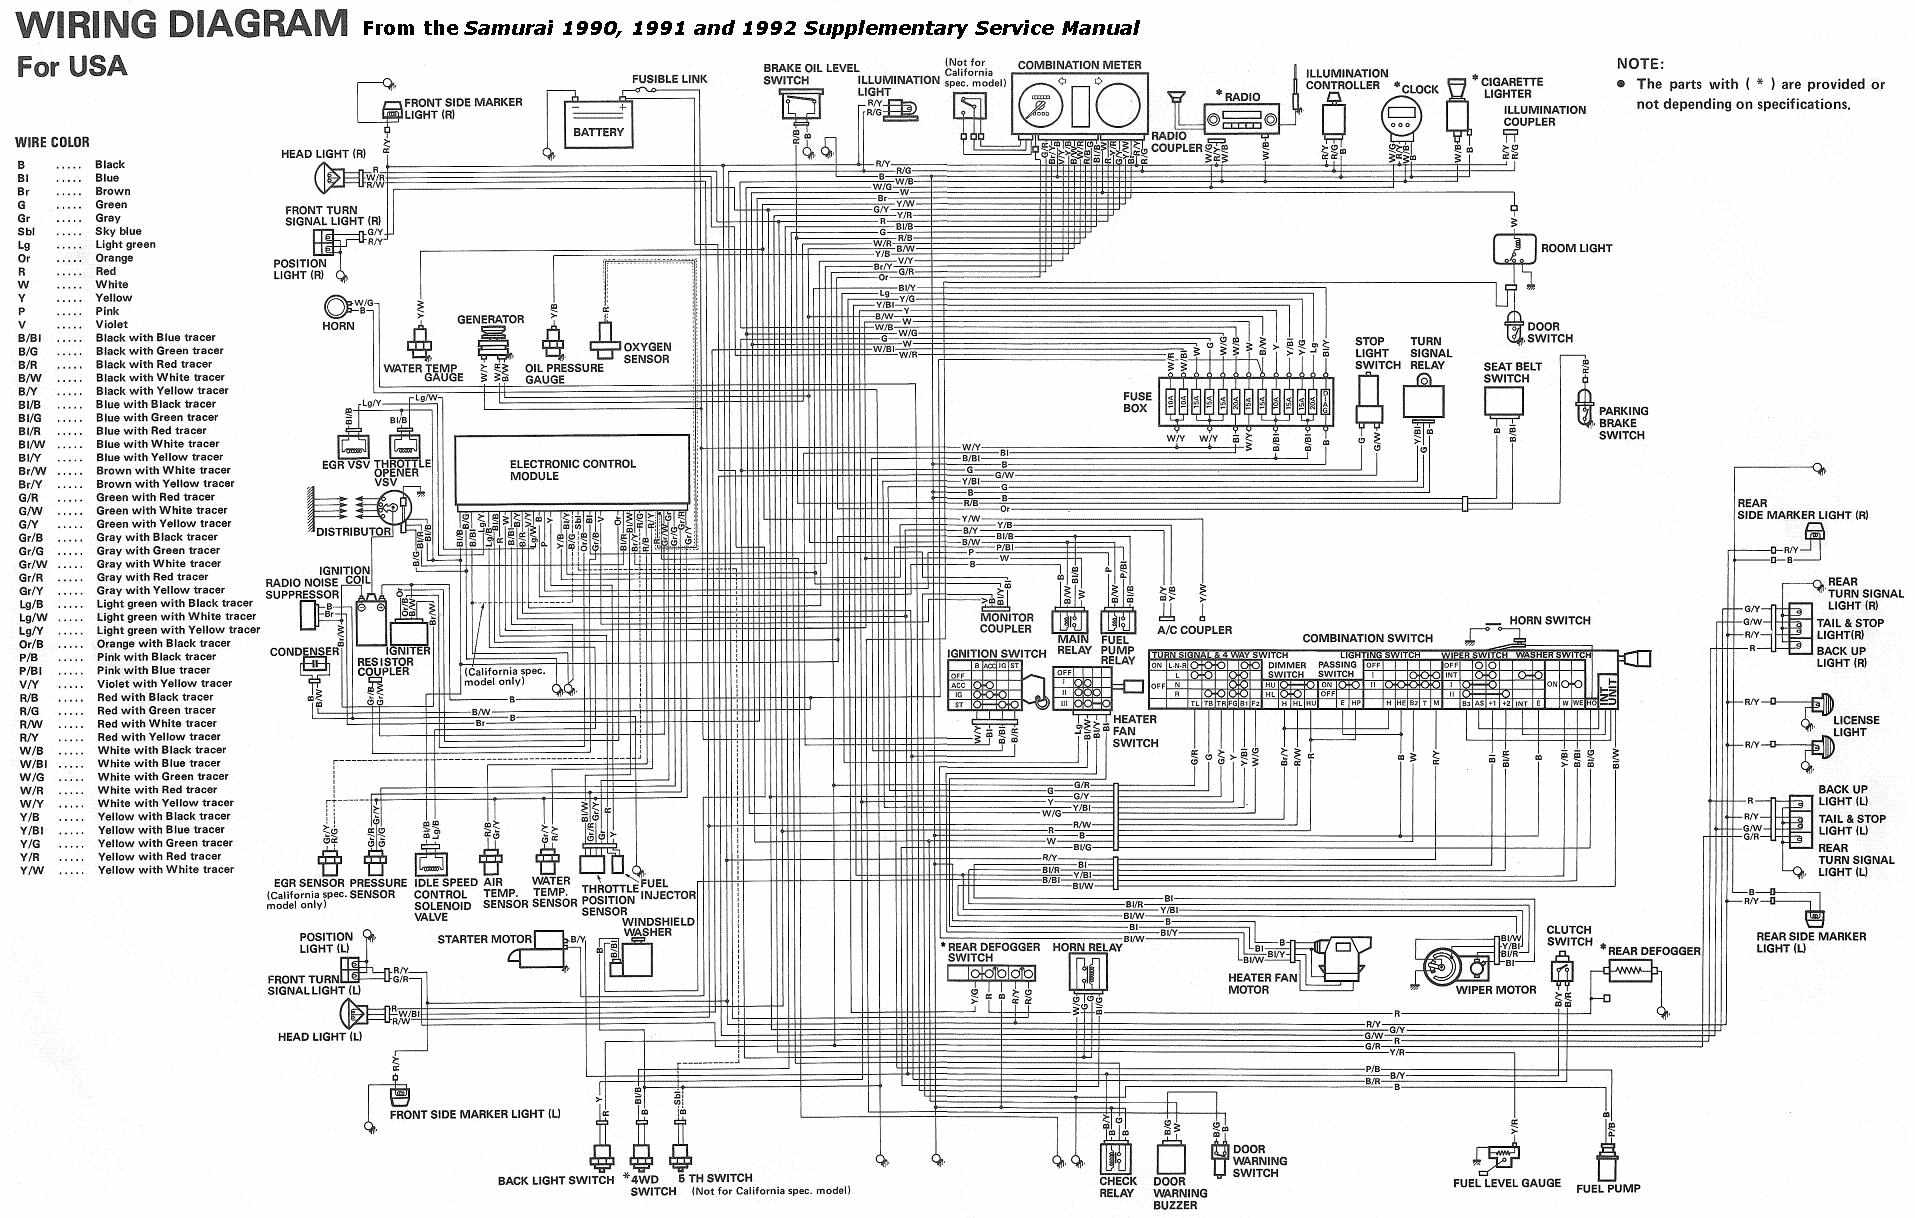 complete electrical wiring diagram of 1990 1992 suzuki samurai?t=1508754855 suzuki car manuals, wiring diagrams pdf & fault codes suzuki ertiga wiring diagram at bakdesigns.co